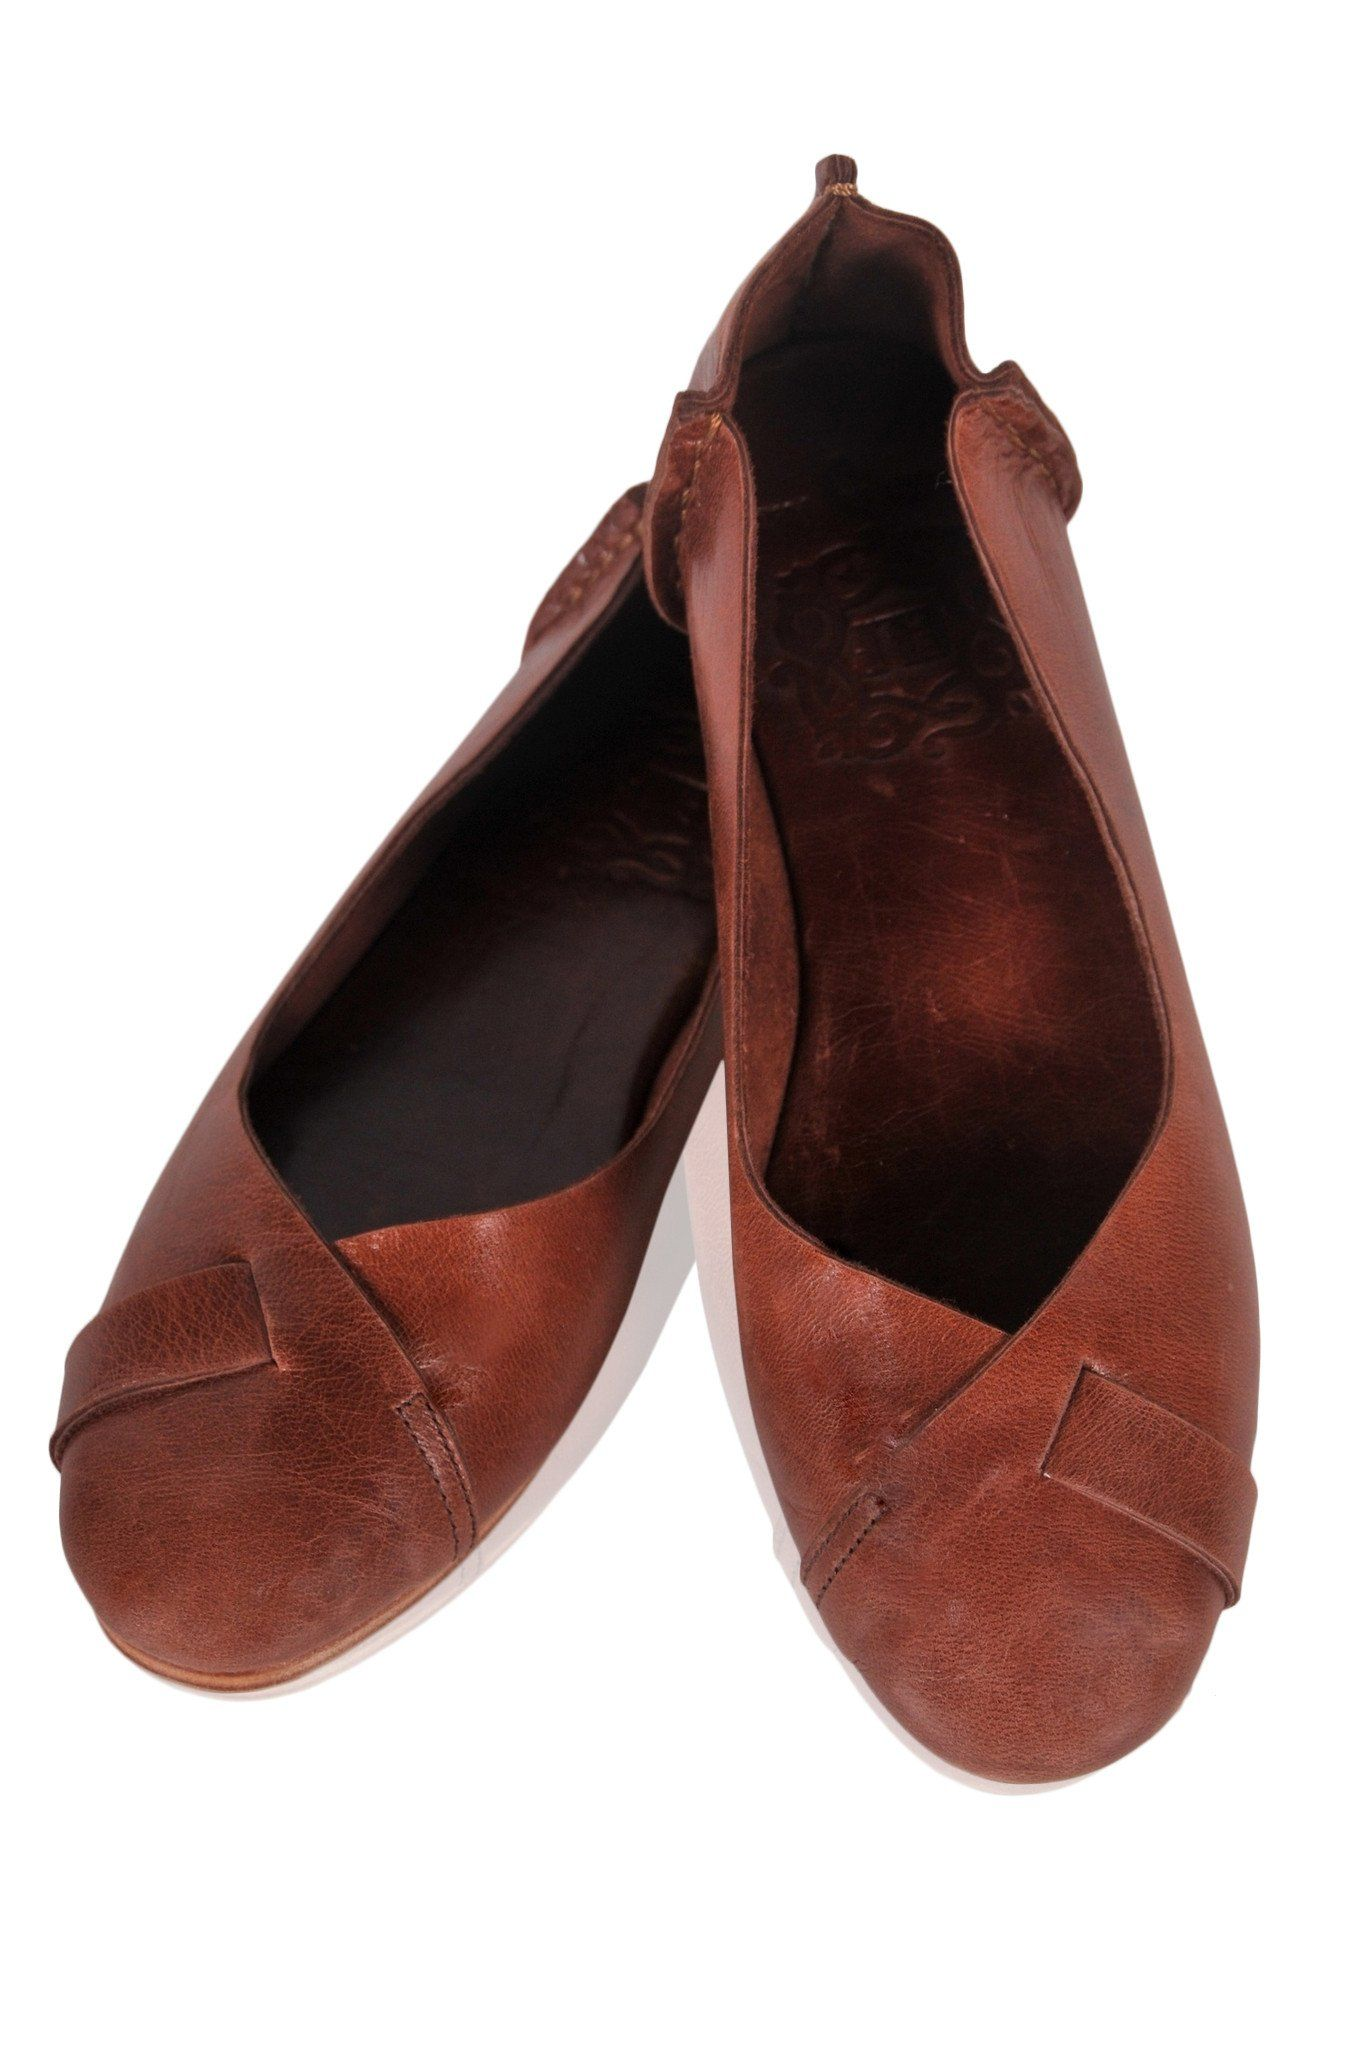 9d3a83df3a119 Native in 2019 | Shoes | Leather ballet flats, Handmade leather ...